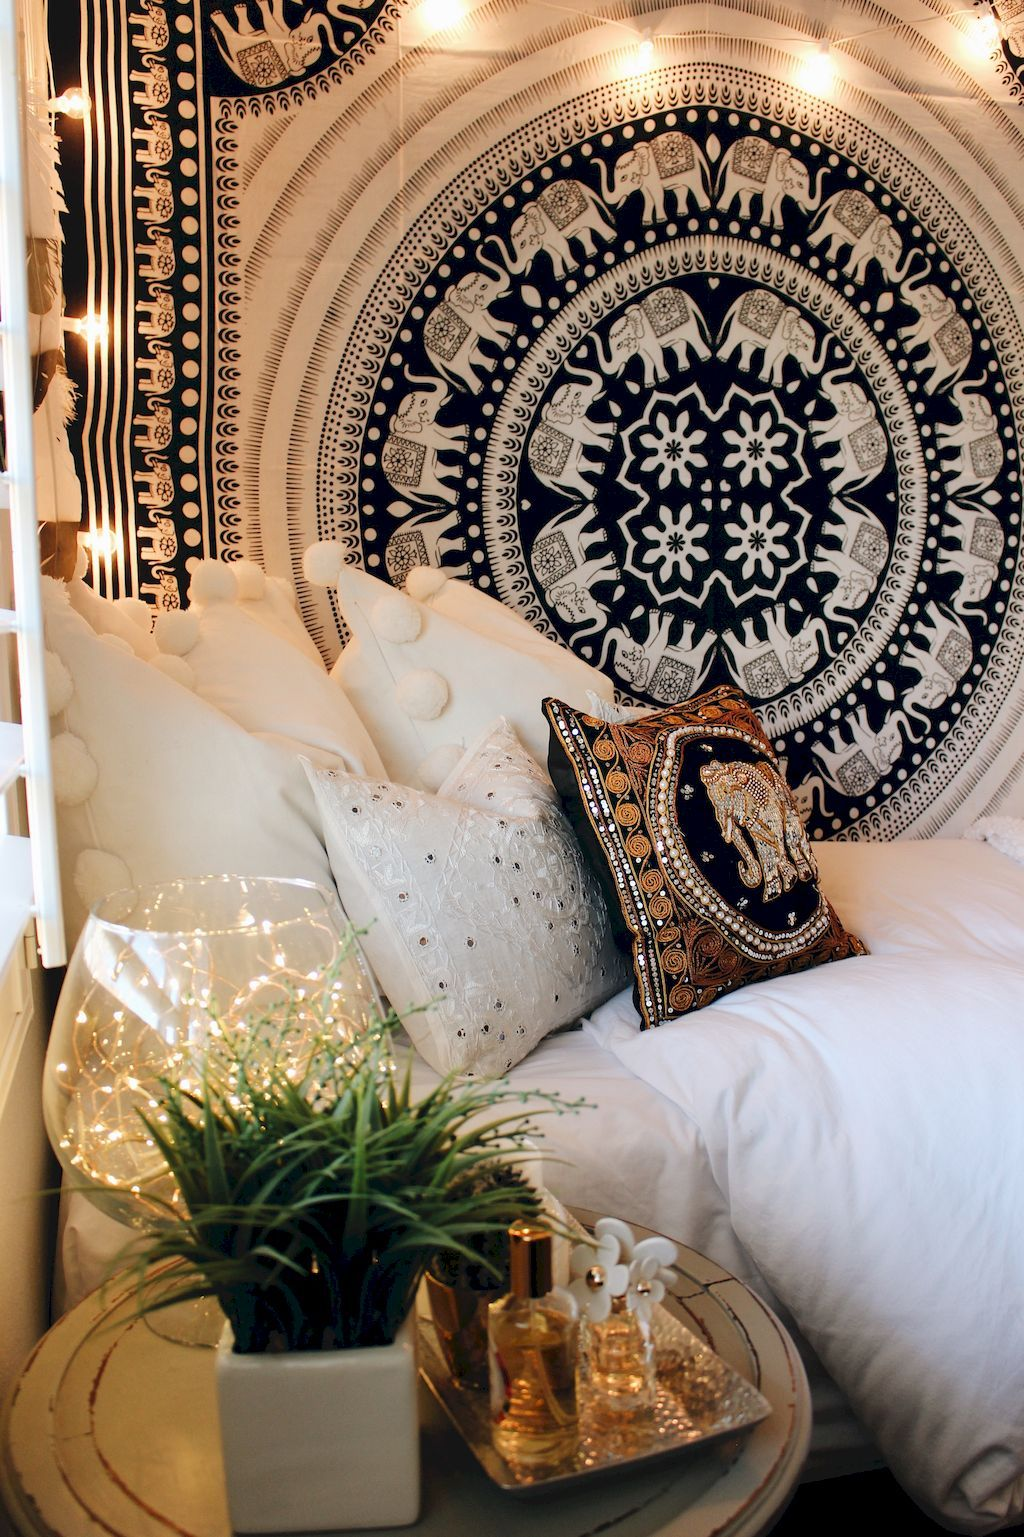 85 Stunning Bohemian Style Interior Design Ideas For Your: 85 Beautiful And Elegance Chic Bohemian Bedroom Decor